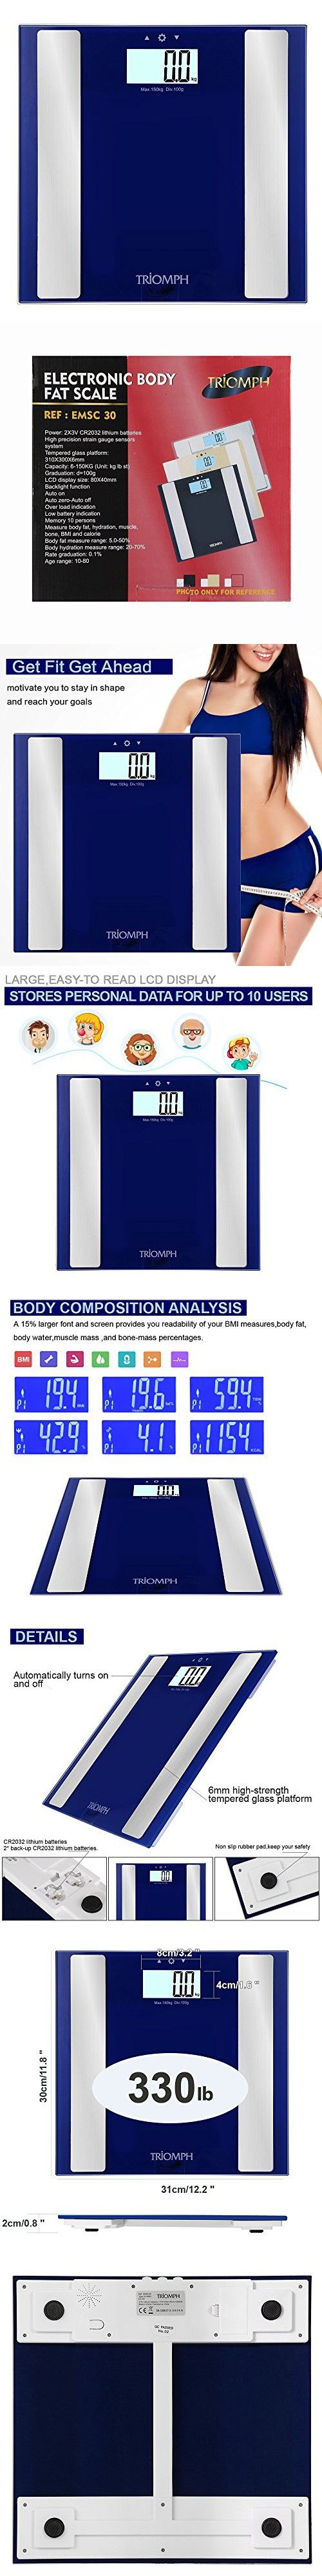 Triomph Digital Body Fat Weight Scale, Bathroom Weight Scales with Step-On Technology, 10 User Recognition, Extra Large Backlit LCD Display, 330lb Weight Capacity (Blue)